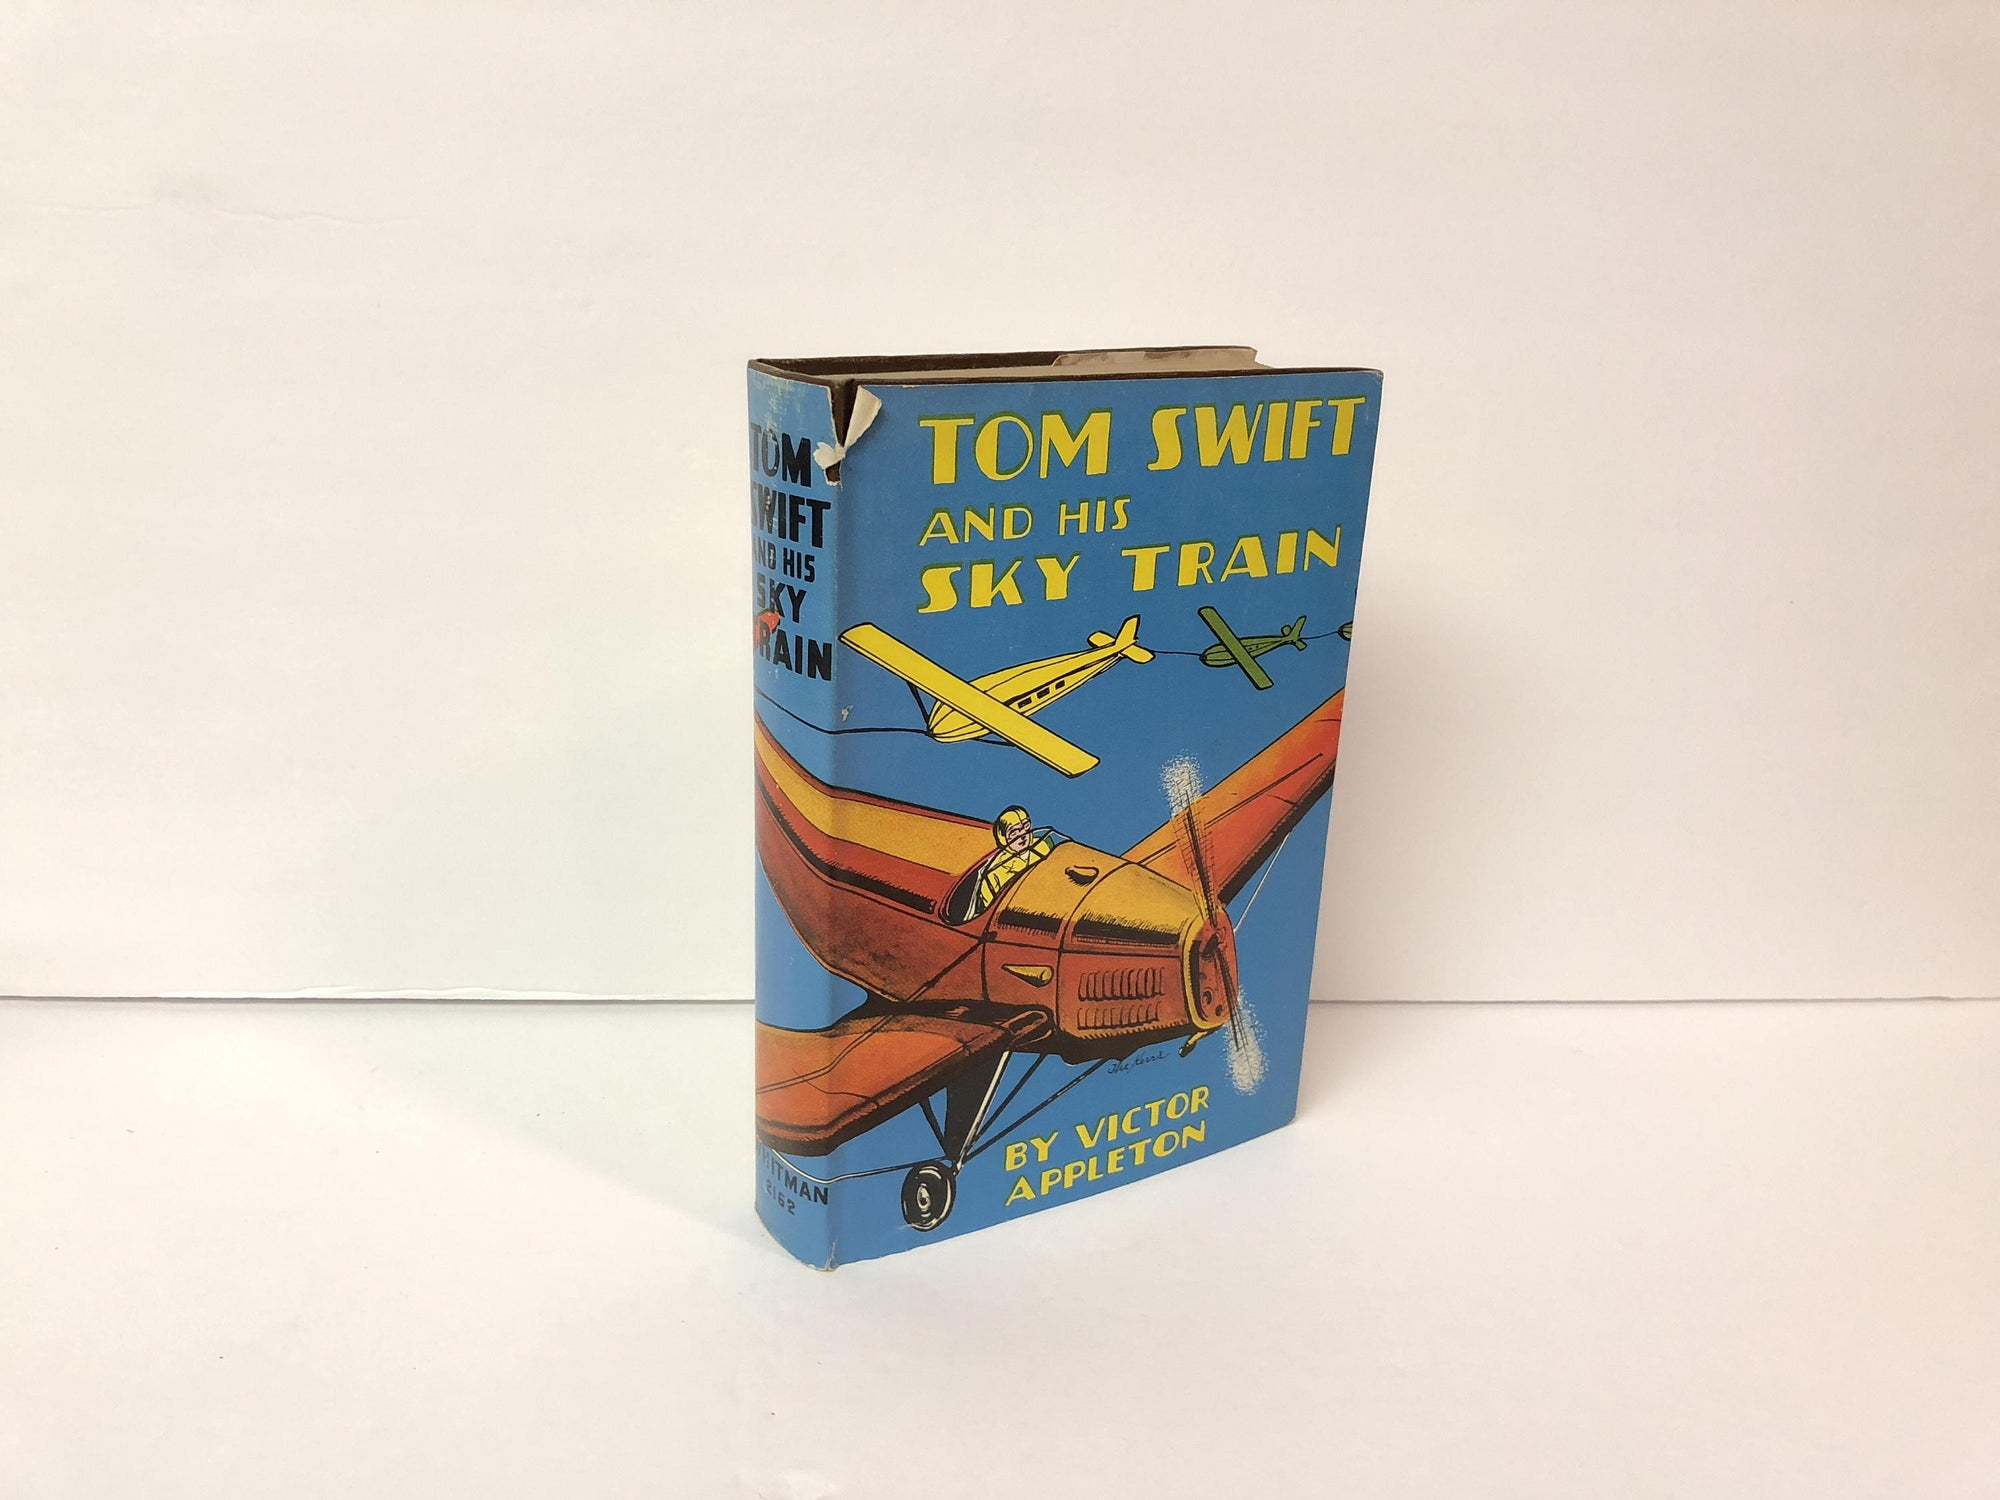 Tom Swift and His Sky Train or Overland Through the Clouds Book Number 34 by Victor Appleton-1931 With Original Dust Jacket Vintage Book